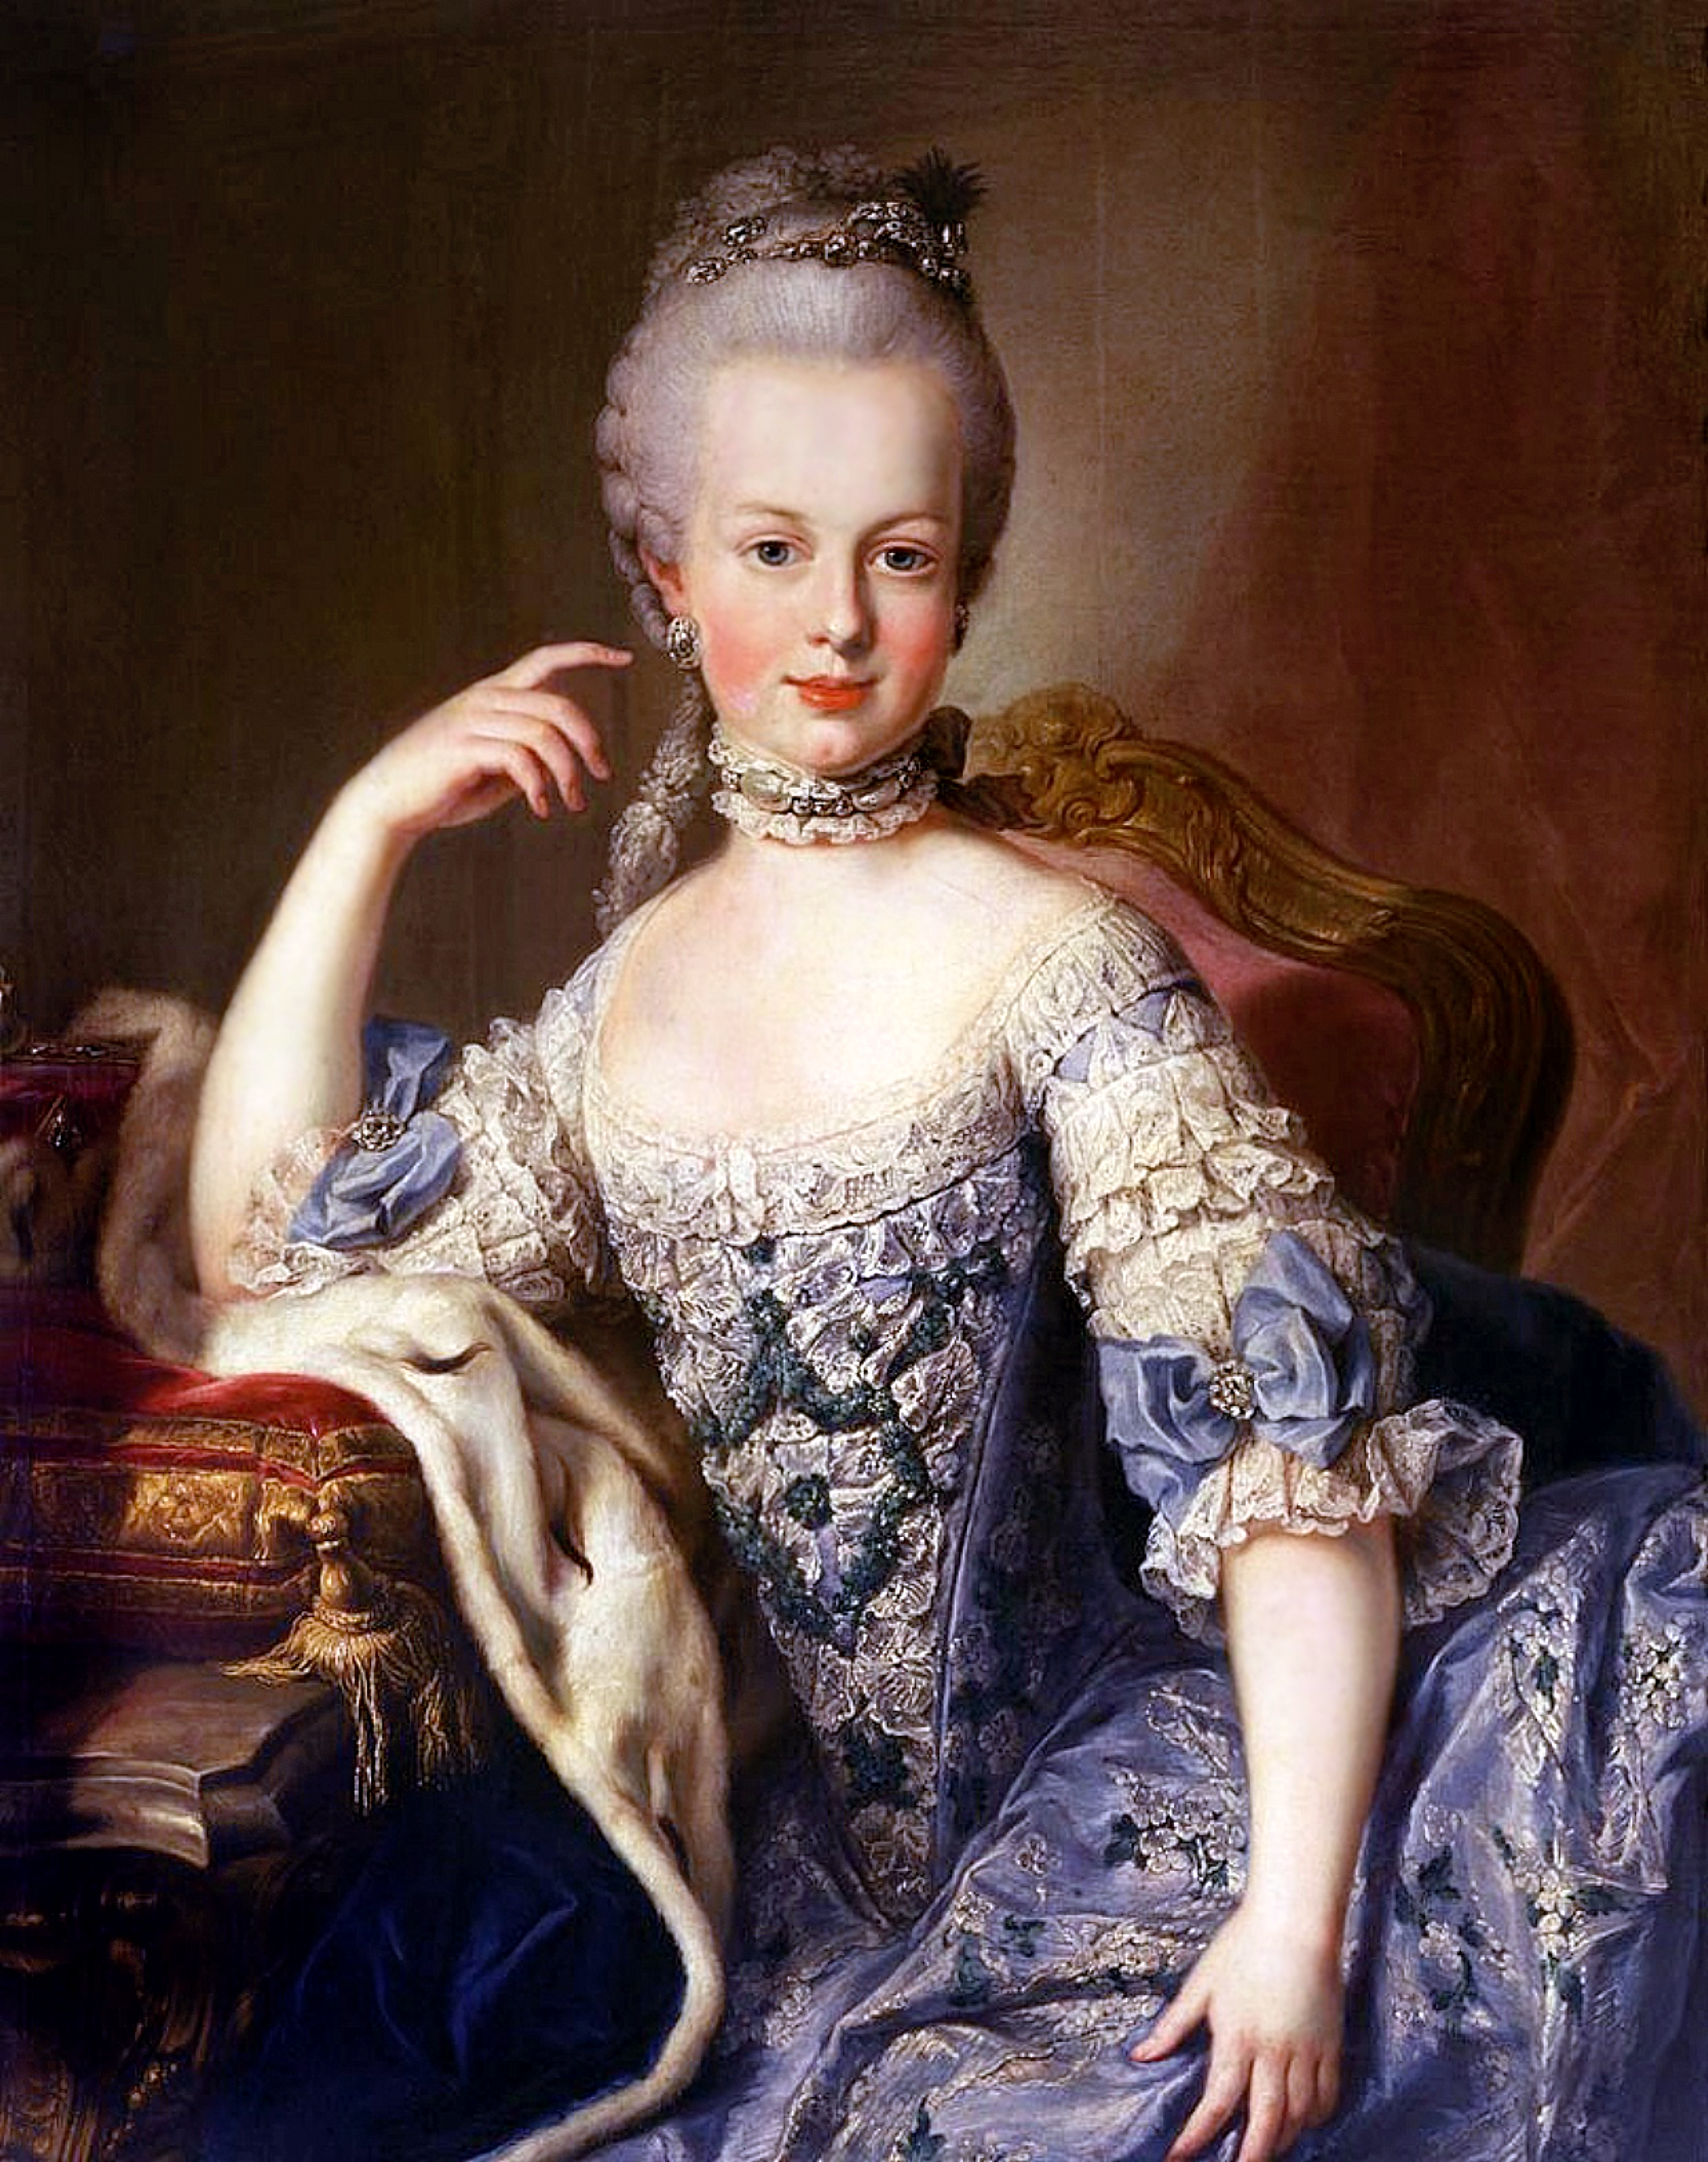 https://upload.wikimedia.org/wikipedia/commons/6/66/Marie_Antoinette_Young2.jpg